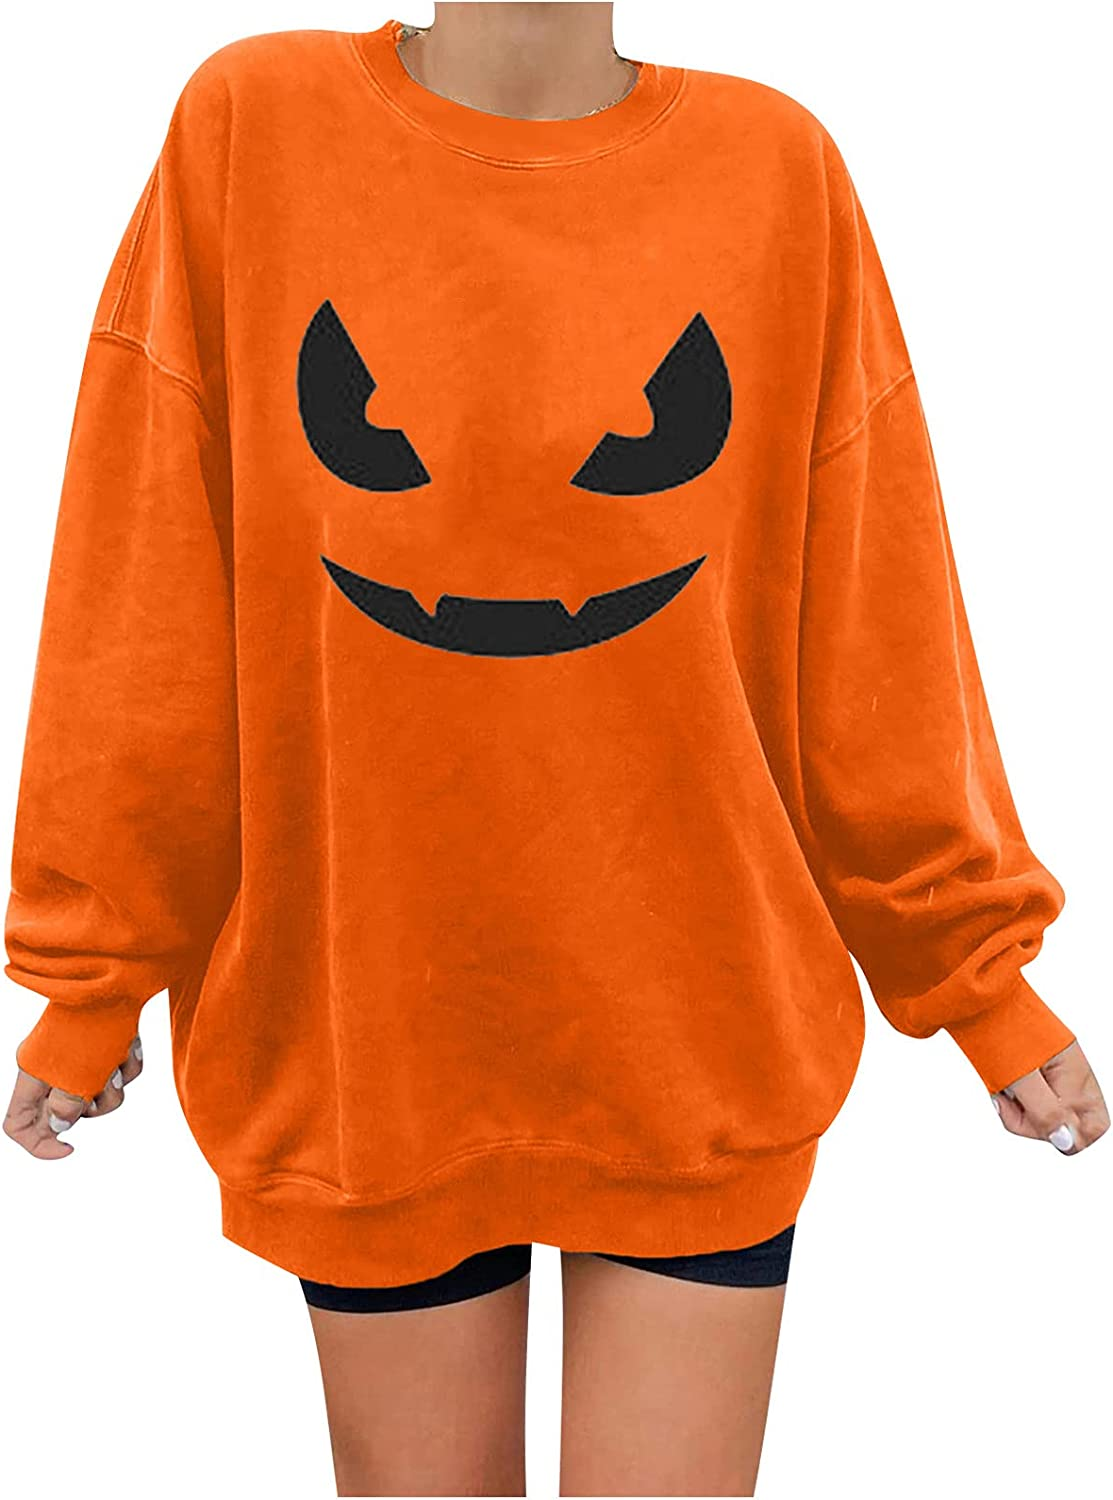 Crewneck Sweatshirts for Womens Funny Pumpkin Graphic Tees Long Sleeve Blouse Winter Loose Pullover